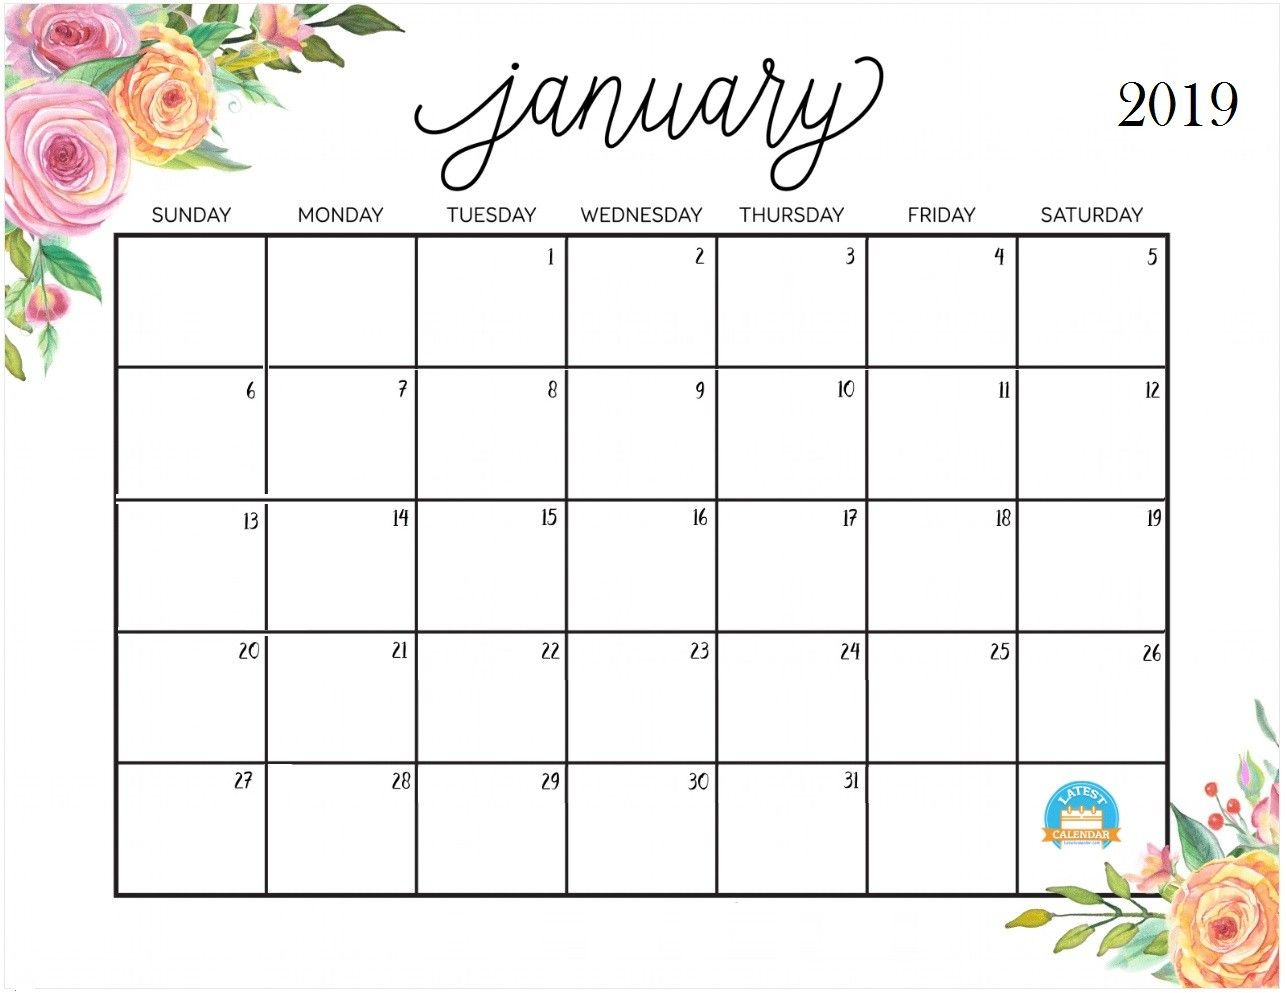 January 2019 Calendar – Free Download | Emma Kay's Baby